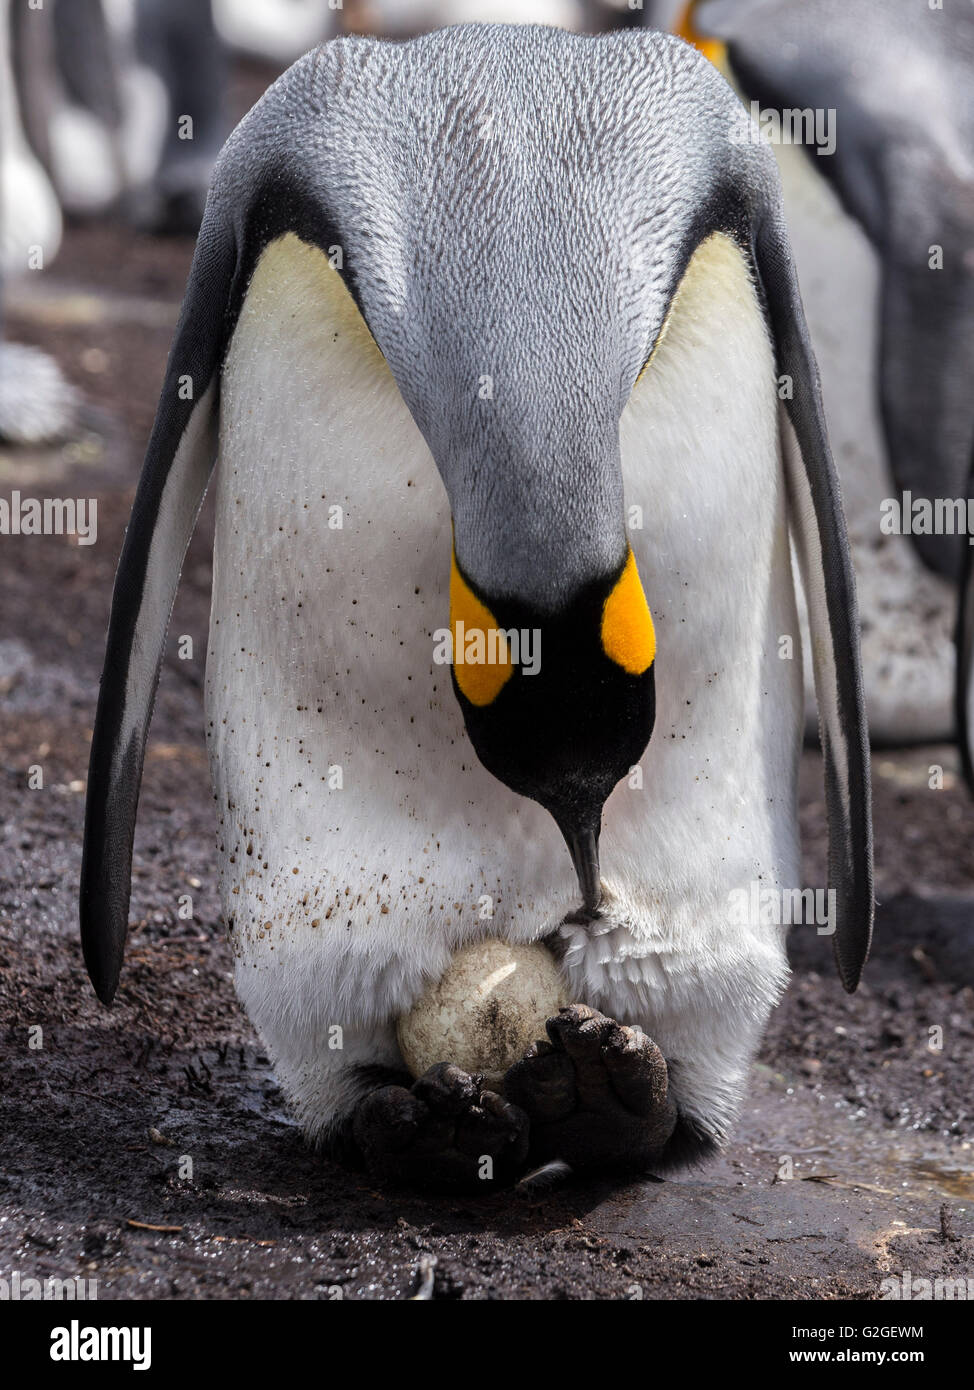 A King Penguin preens it feathers around an egg incubating on its feet - Stock Image